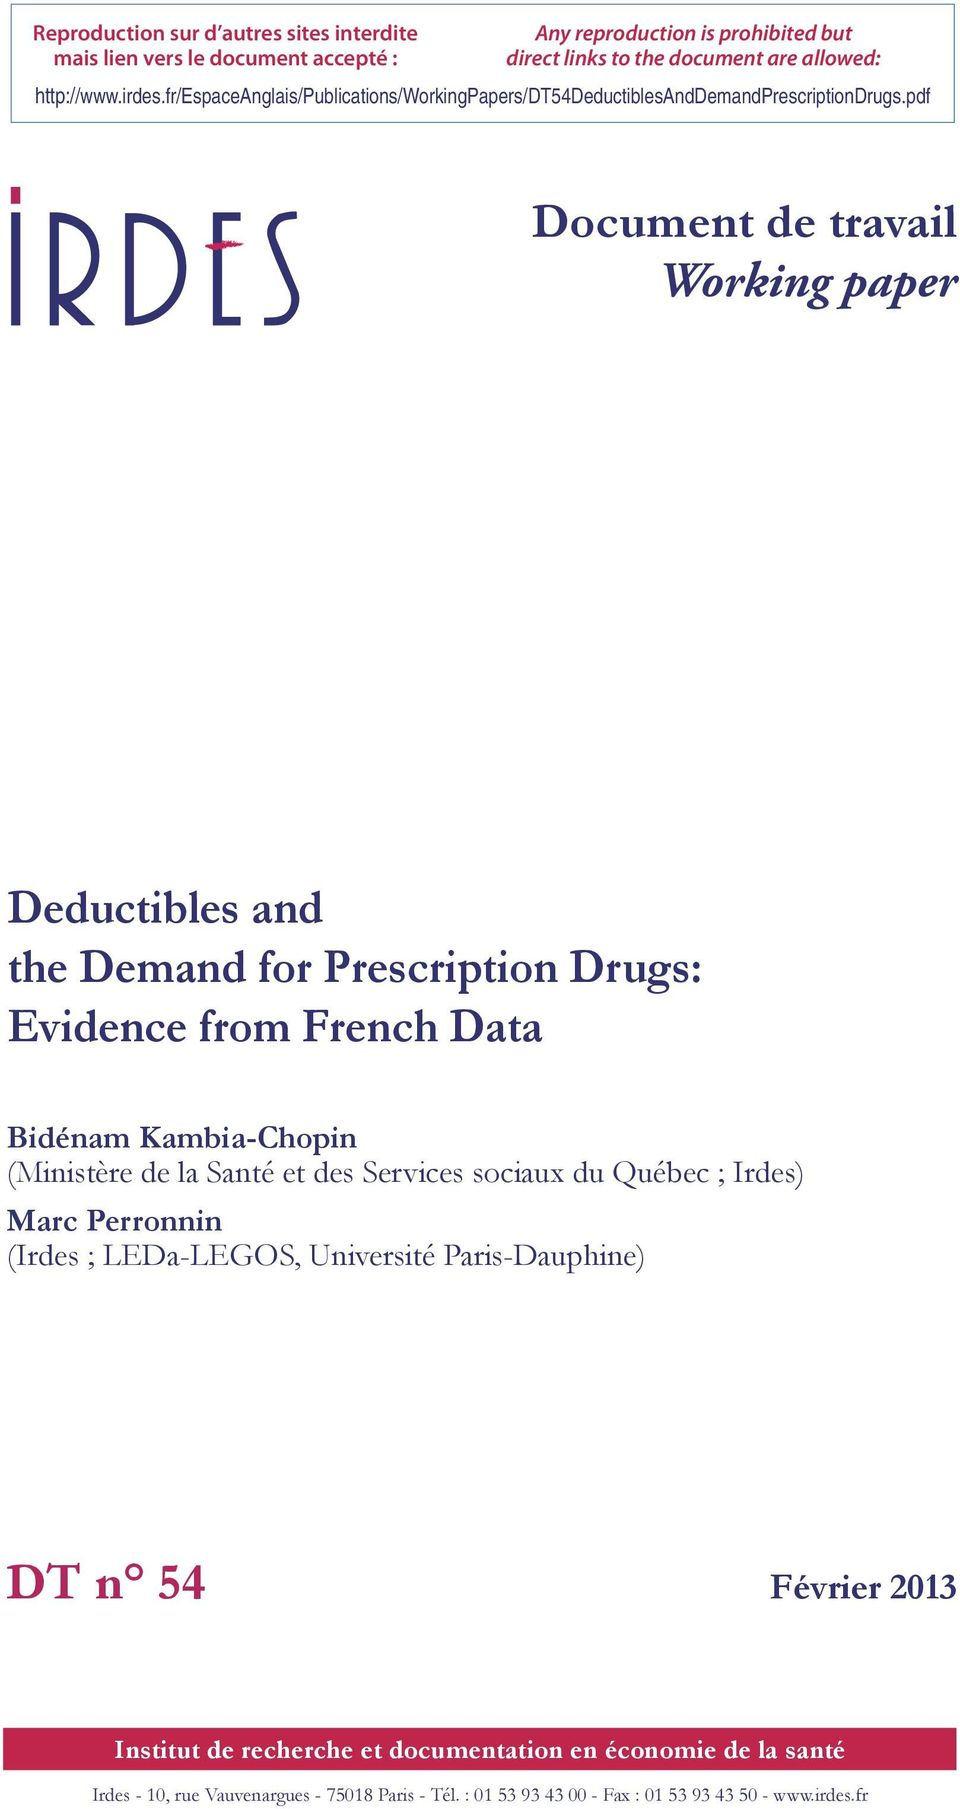 pdf Document de travail Working paper Deductibles and the Demand for Prescription Drugs: Evidence from French Data Bidénam Kambia-Chopin (Ministère de la Santé et des Services